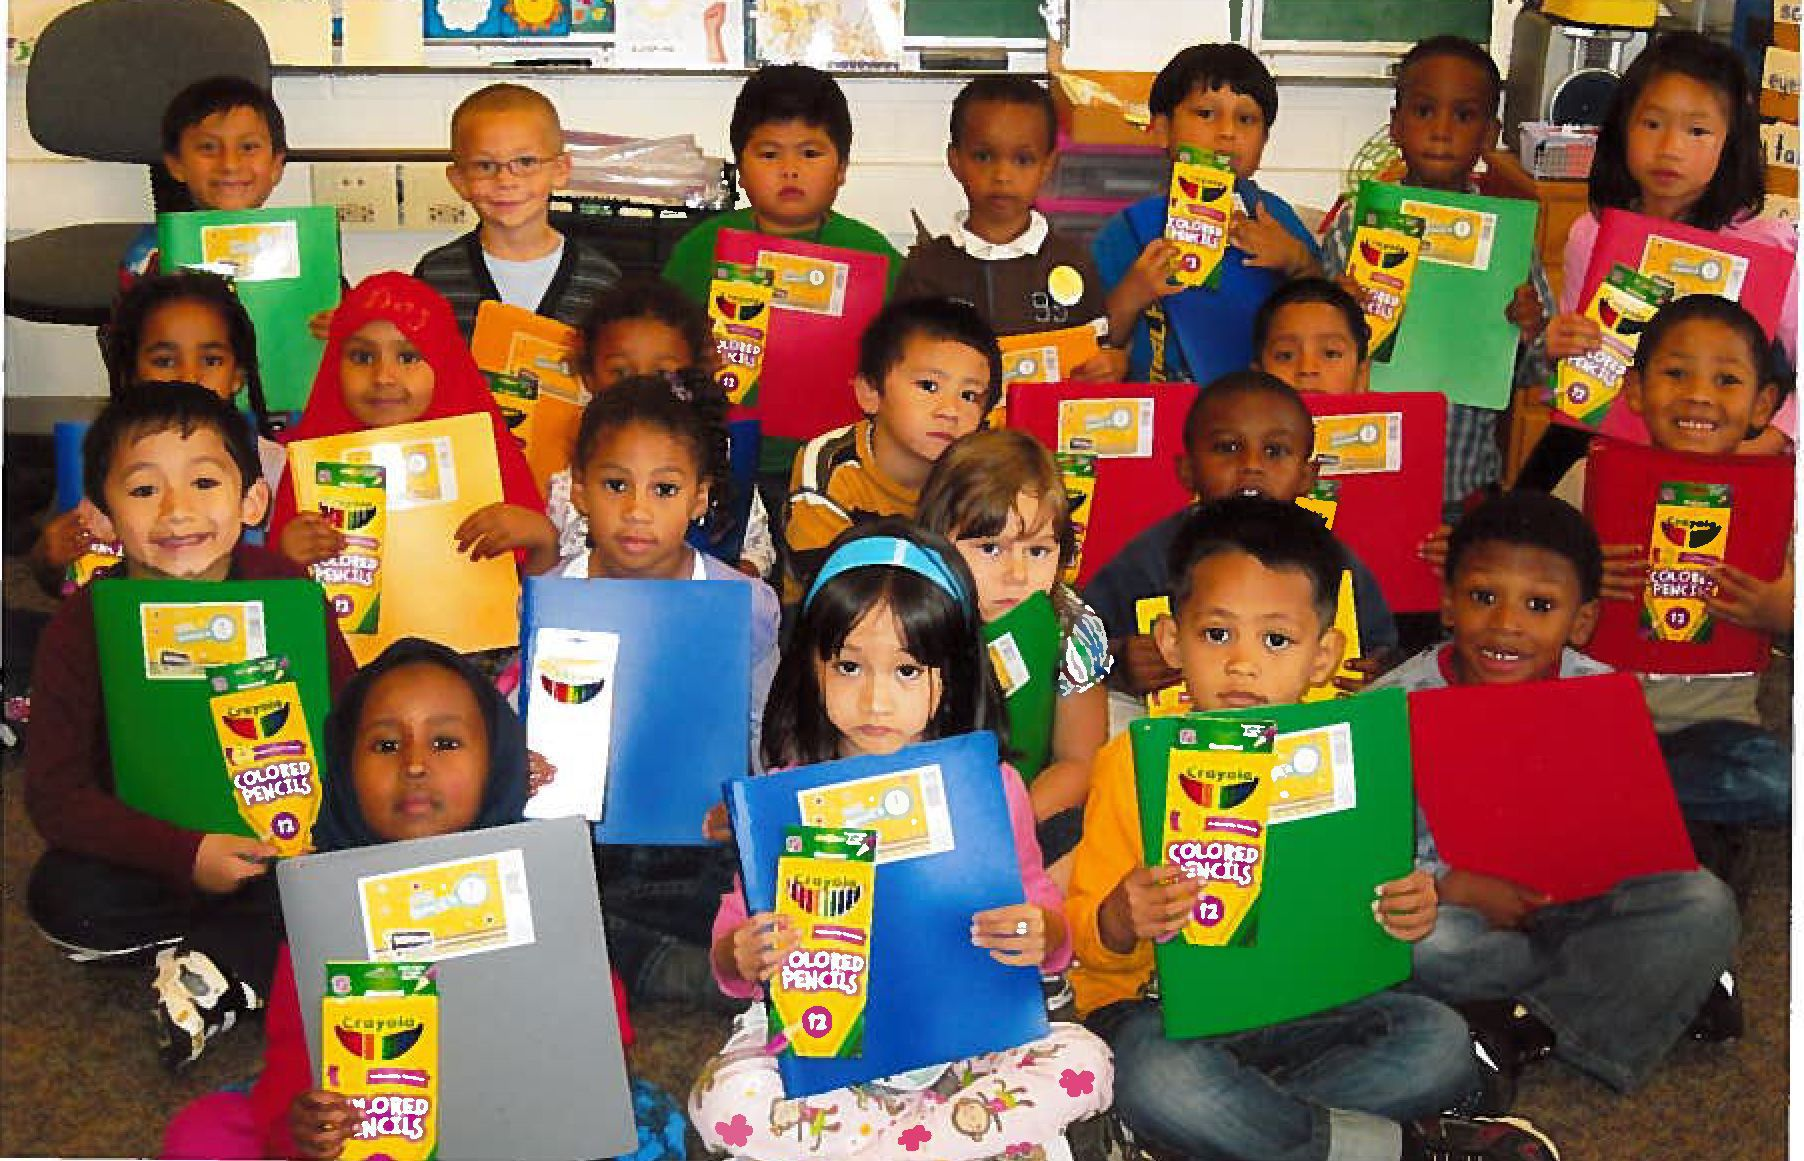 Students happy with new classroom supplies